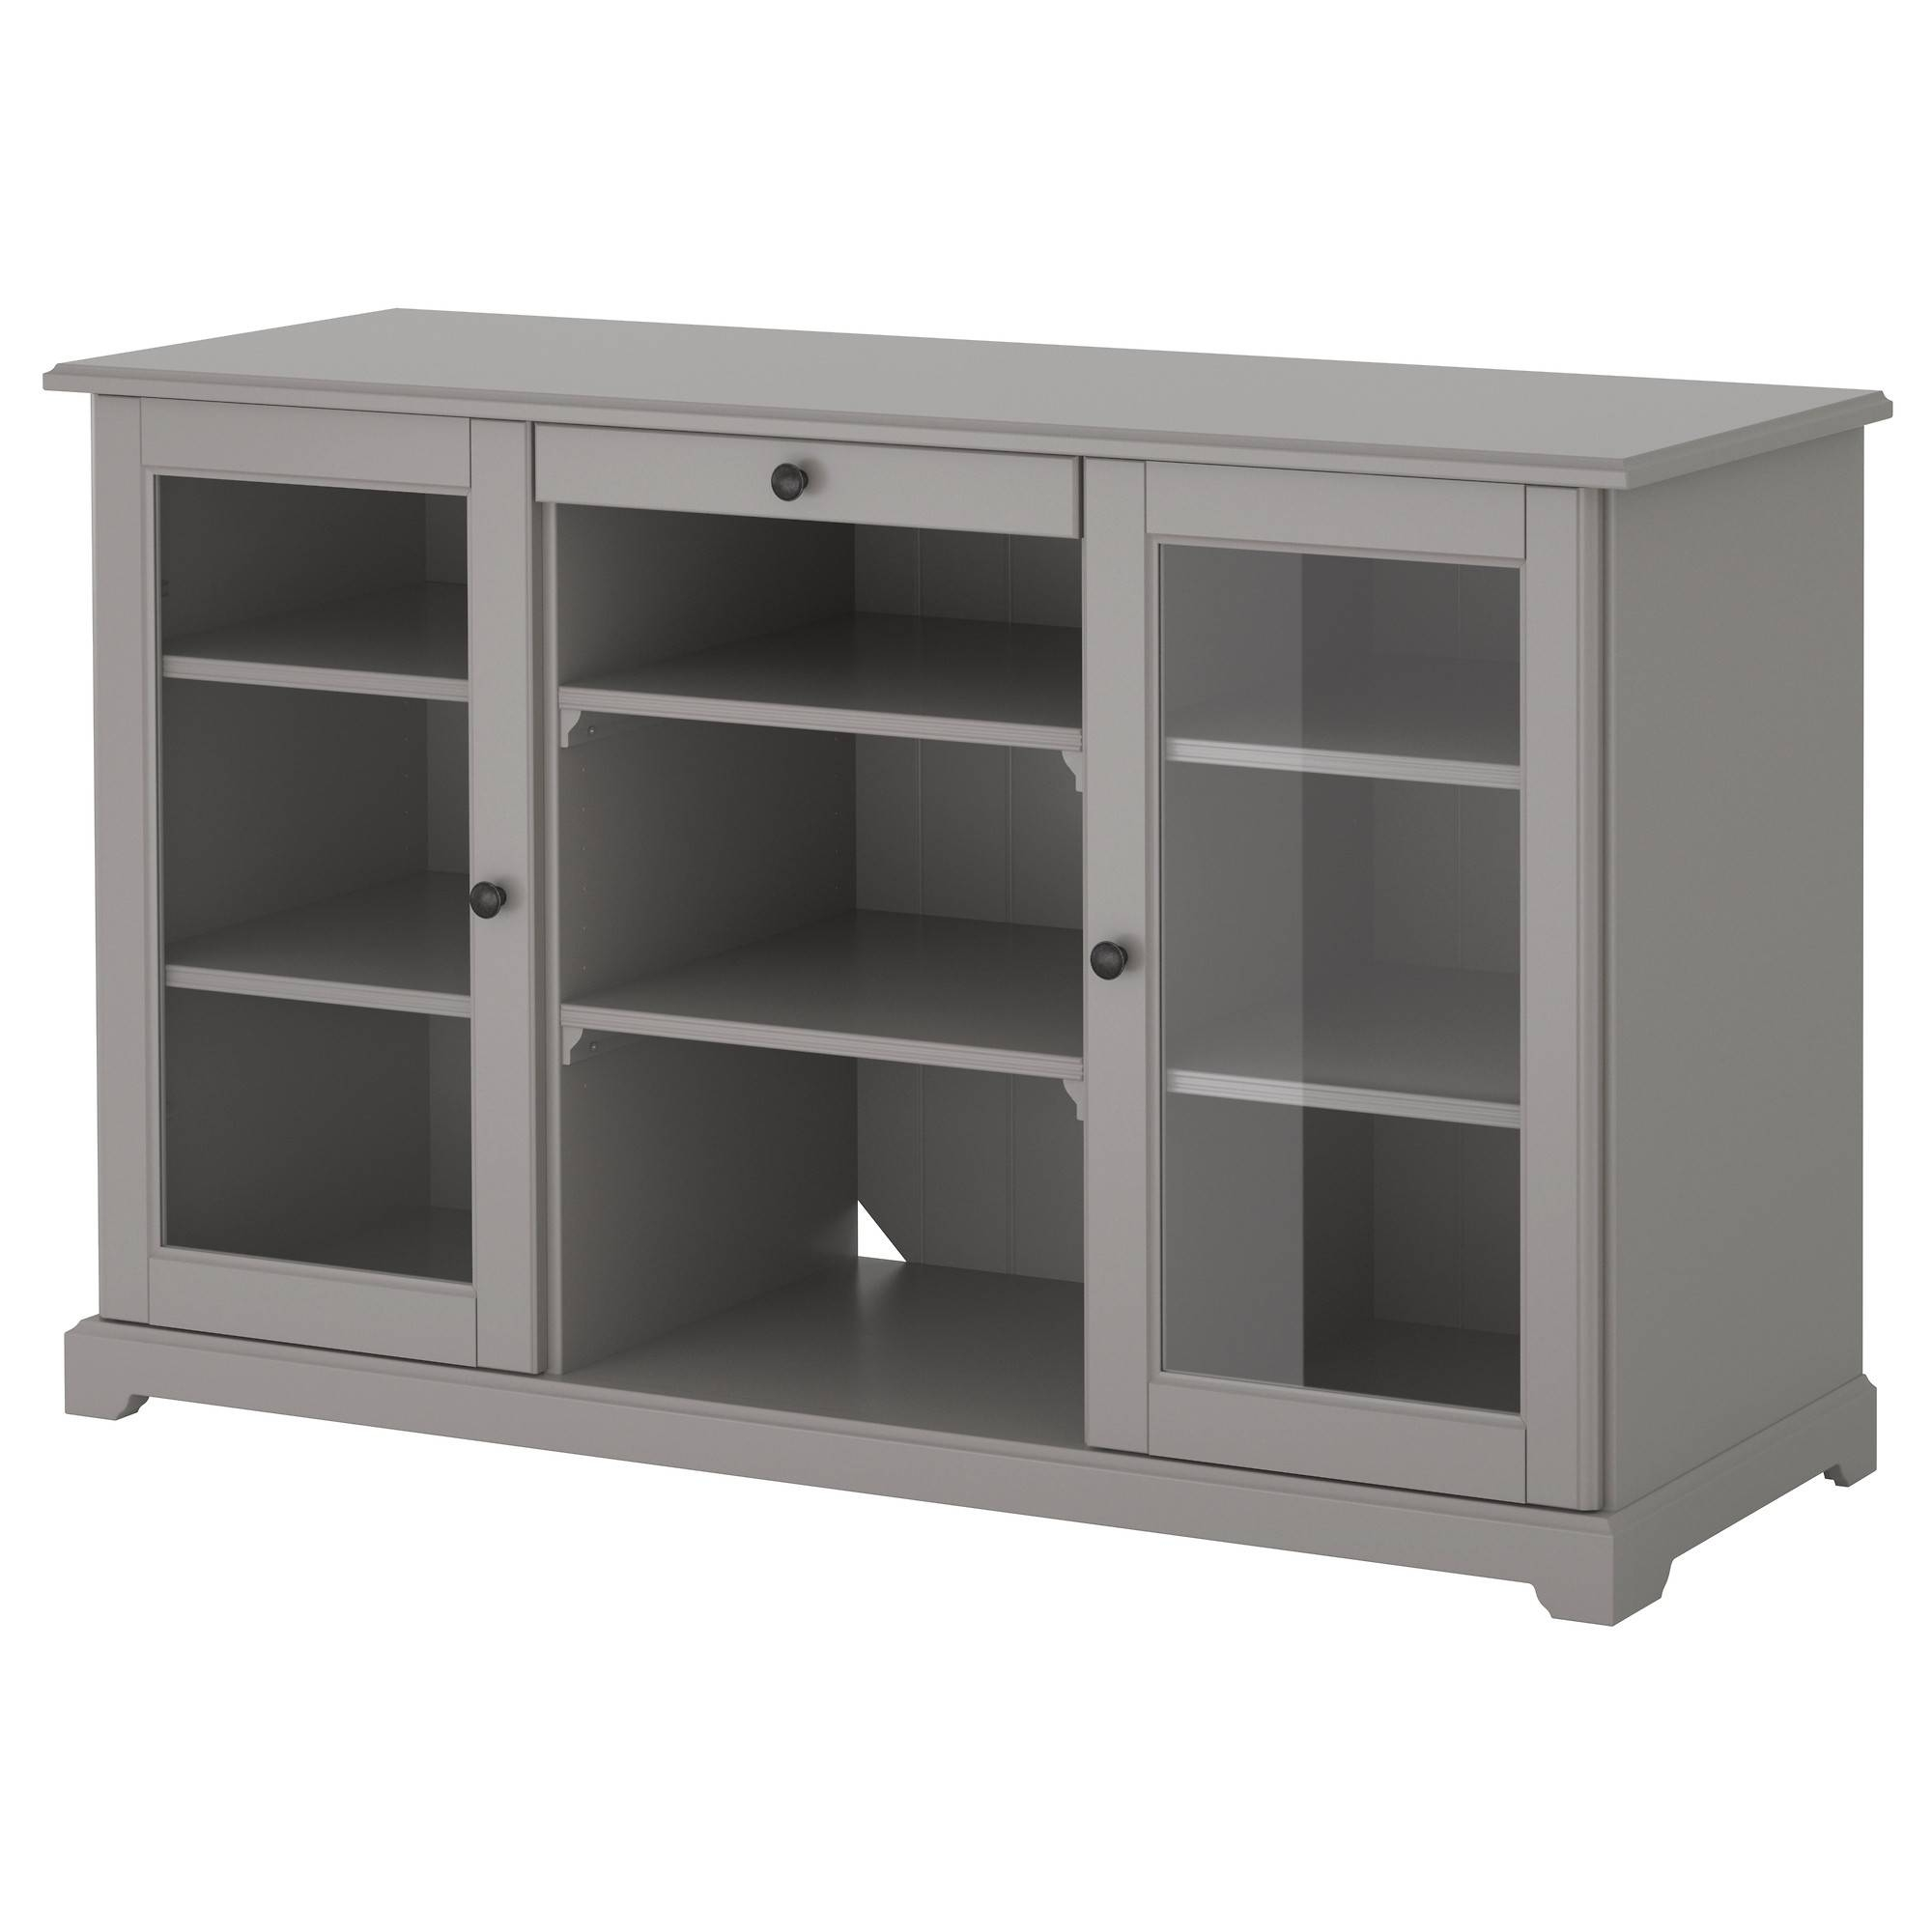 Liatorp Sideboard – Gray – Ikea With Regard To Most Current Ikea Sideboards (#8 of 15)